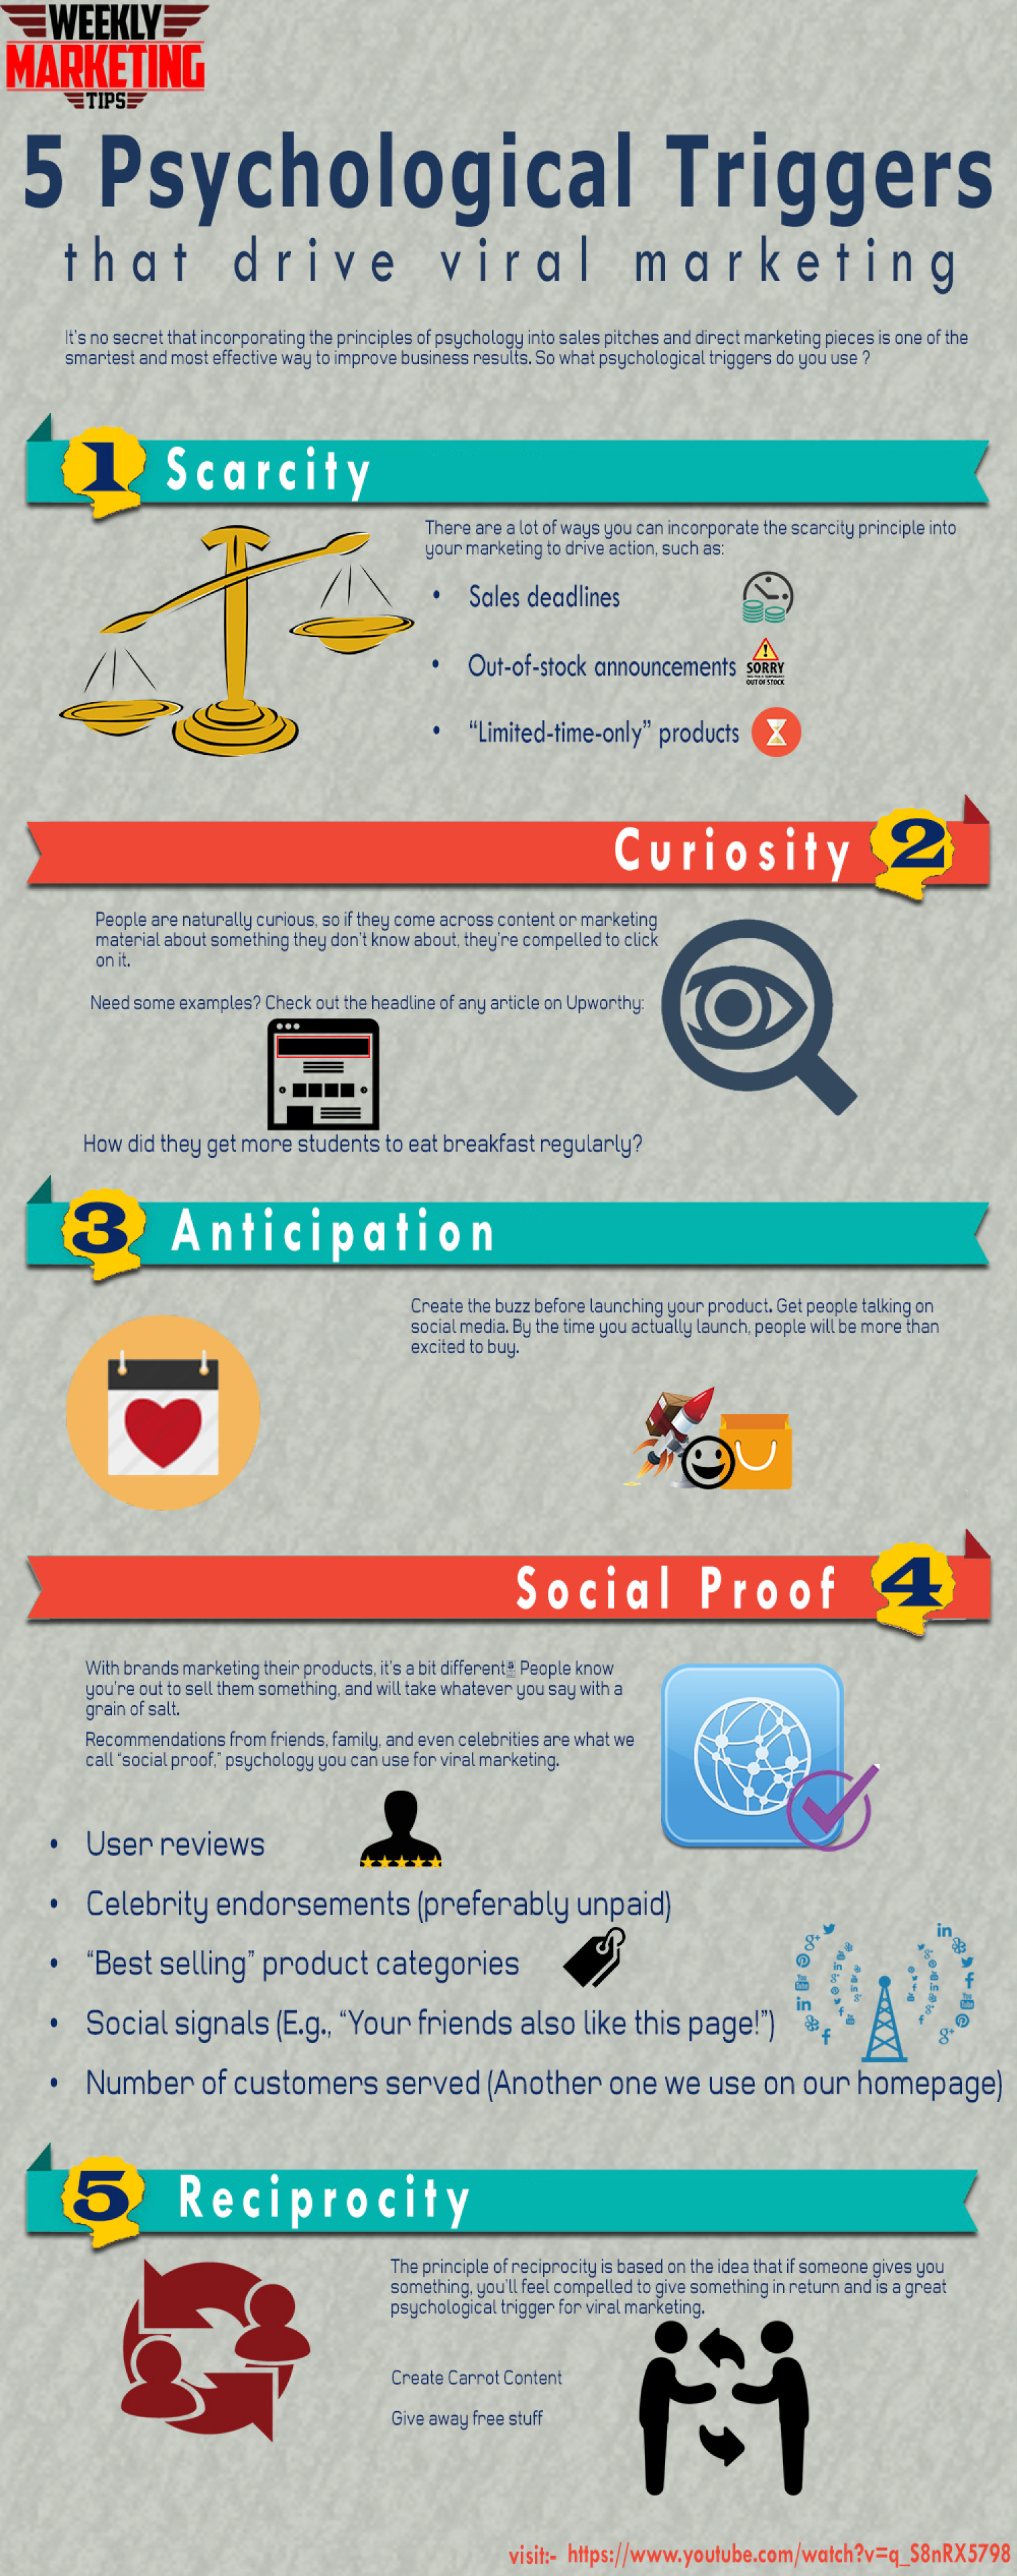 5 Psychological Triggers That Drive Consumer Behavior | Viral Marketing Infographic